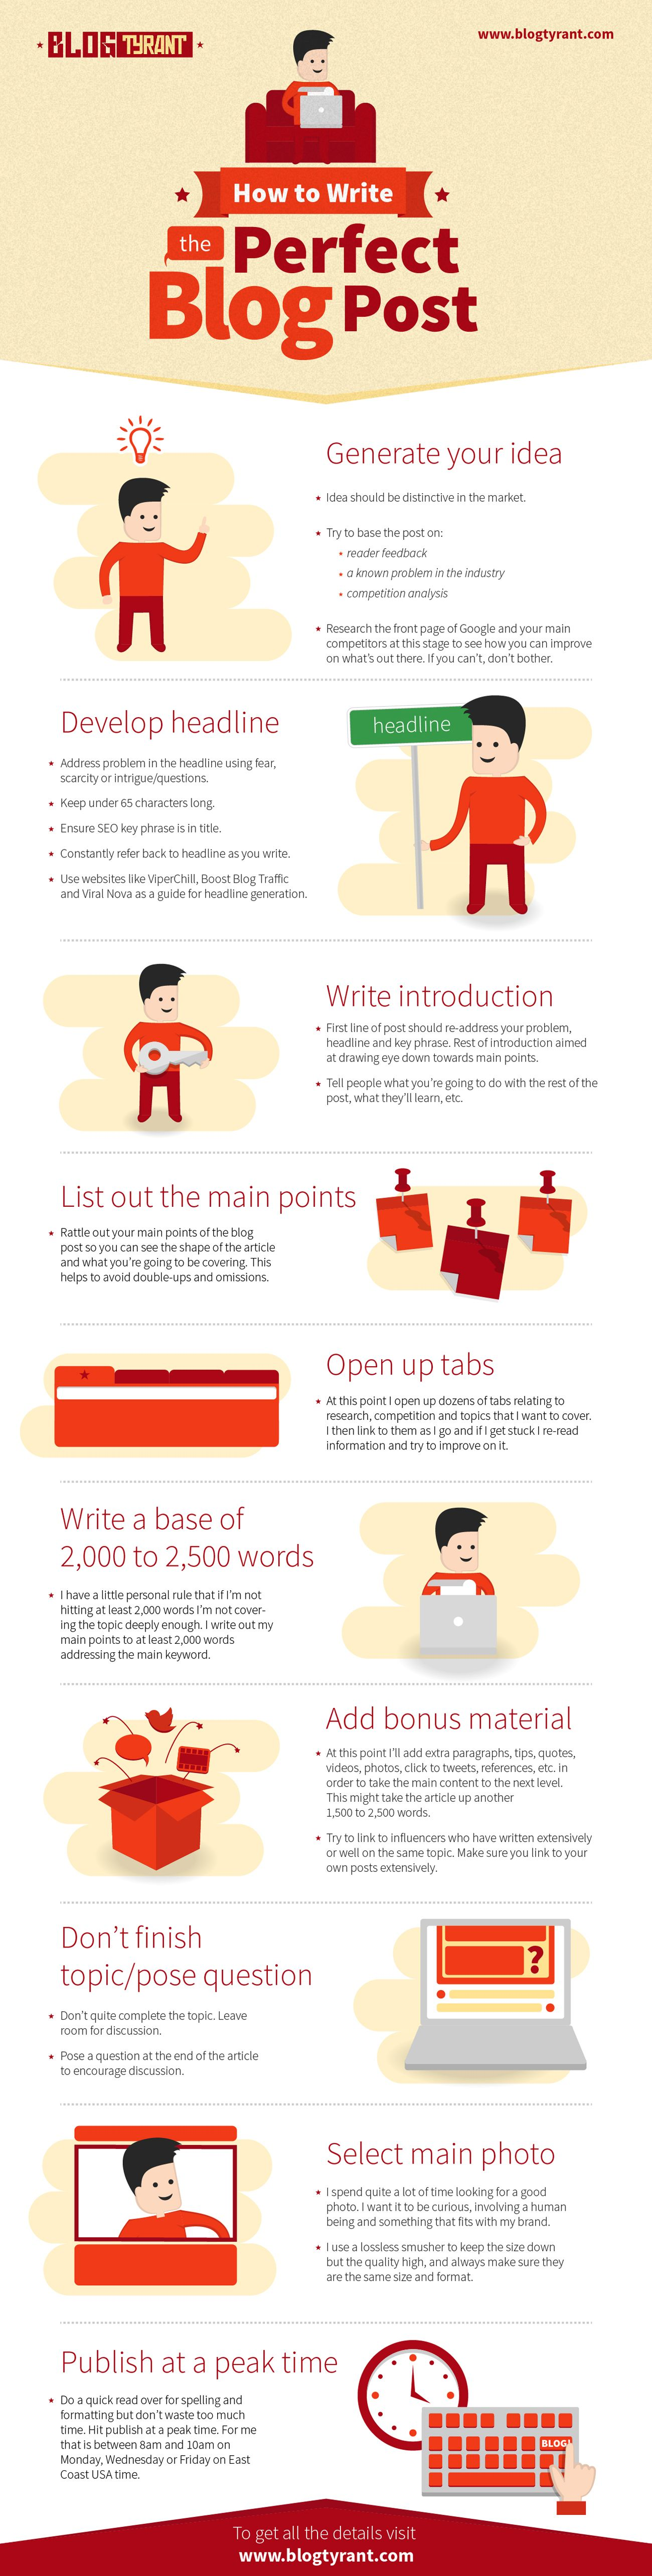 How to write the perfect blog post a complete guide to copy how to write the perfect blog post a complete guide to copy infographic by malvernweather Gallery